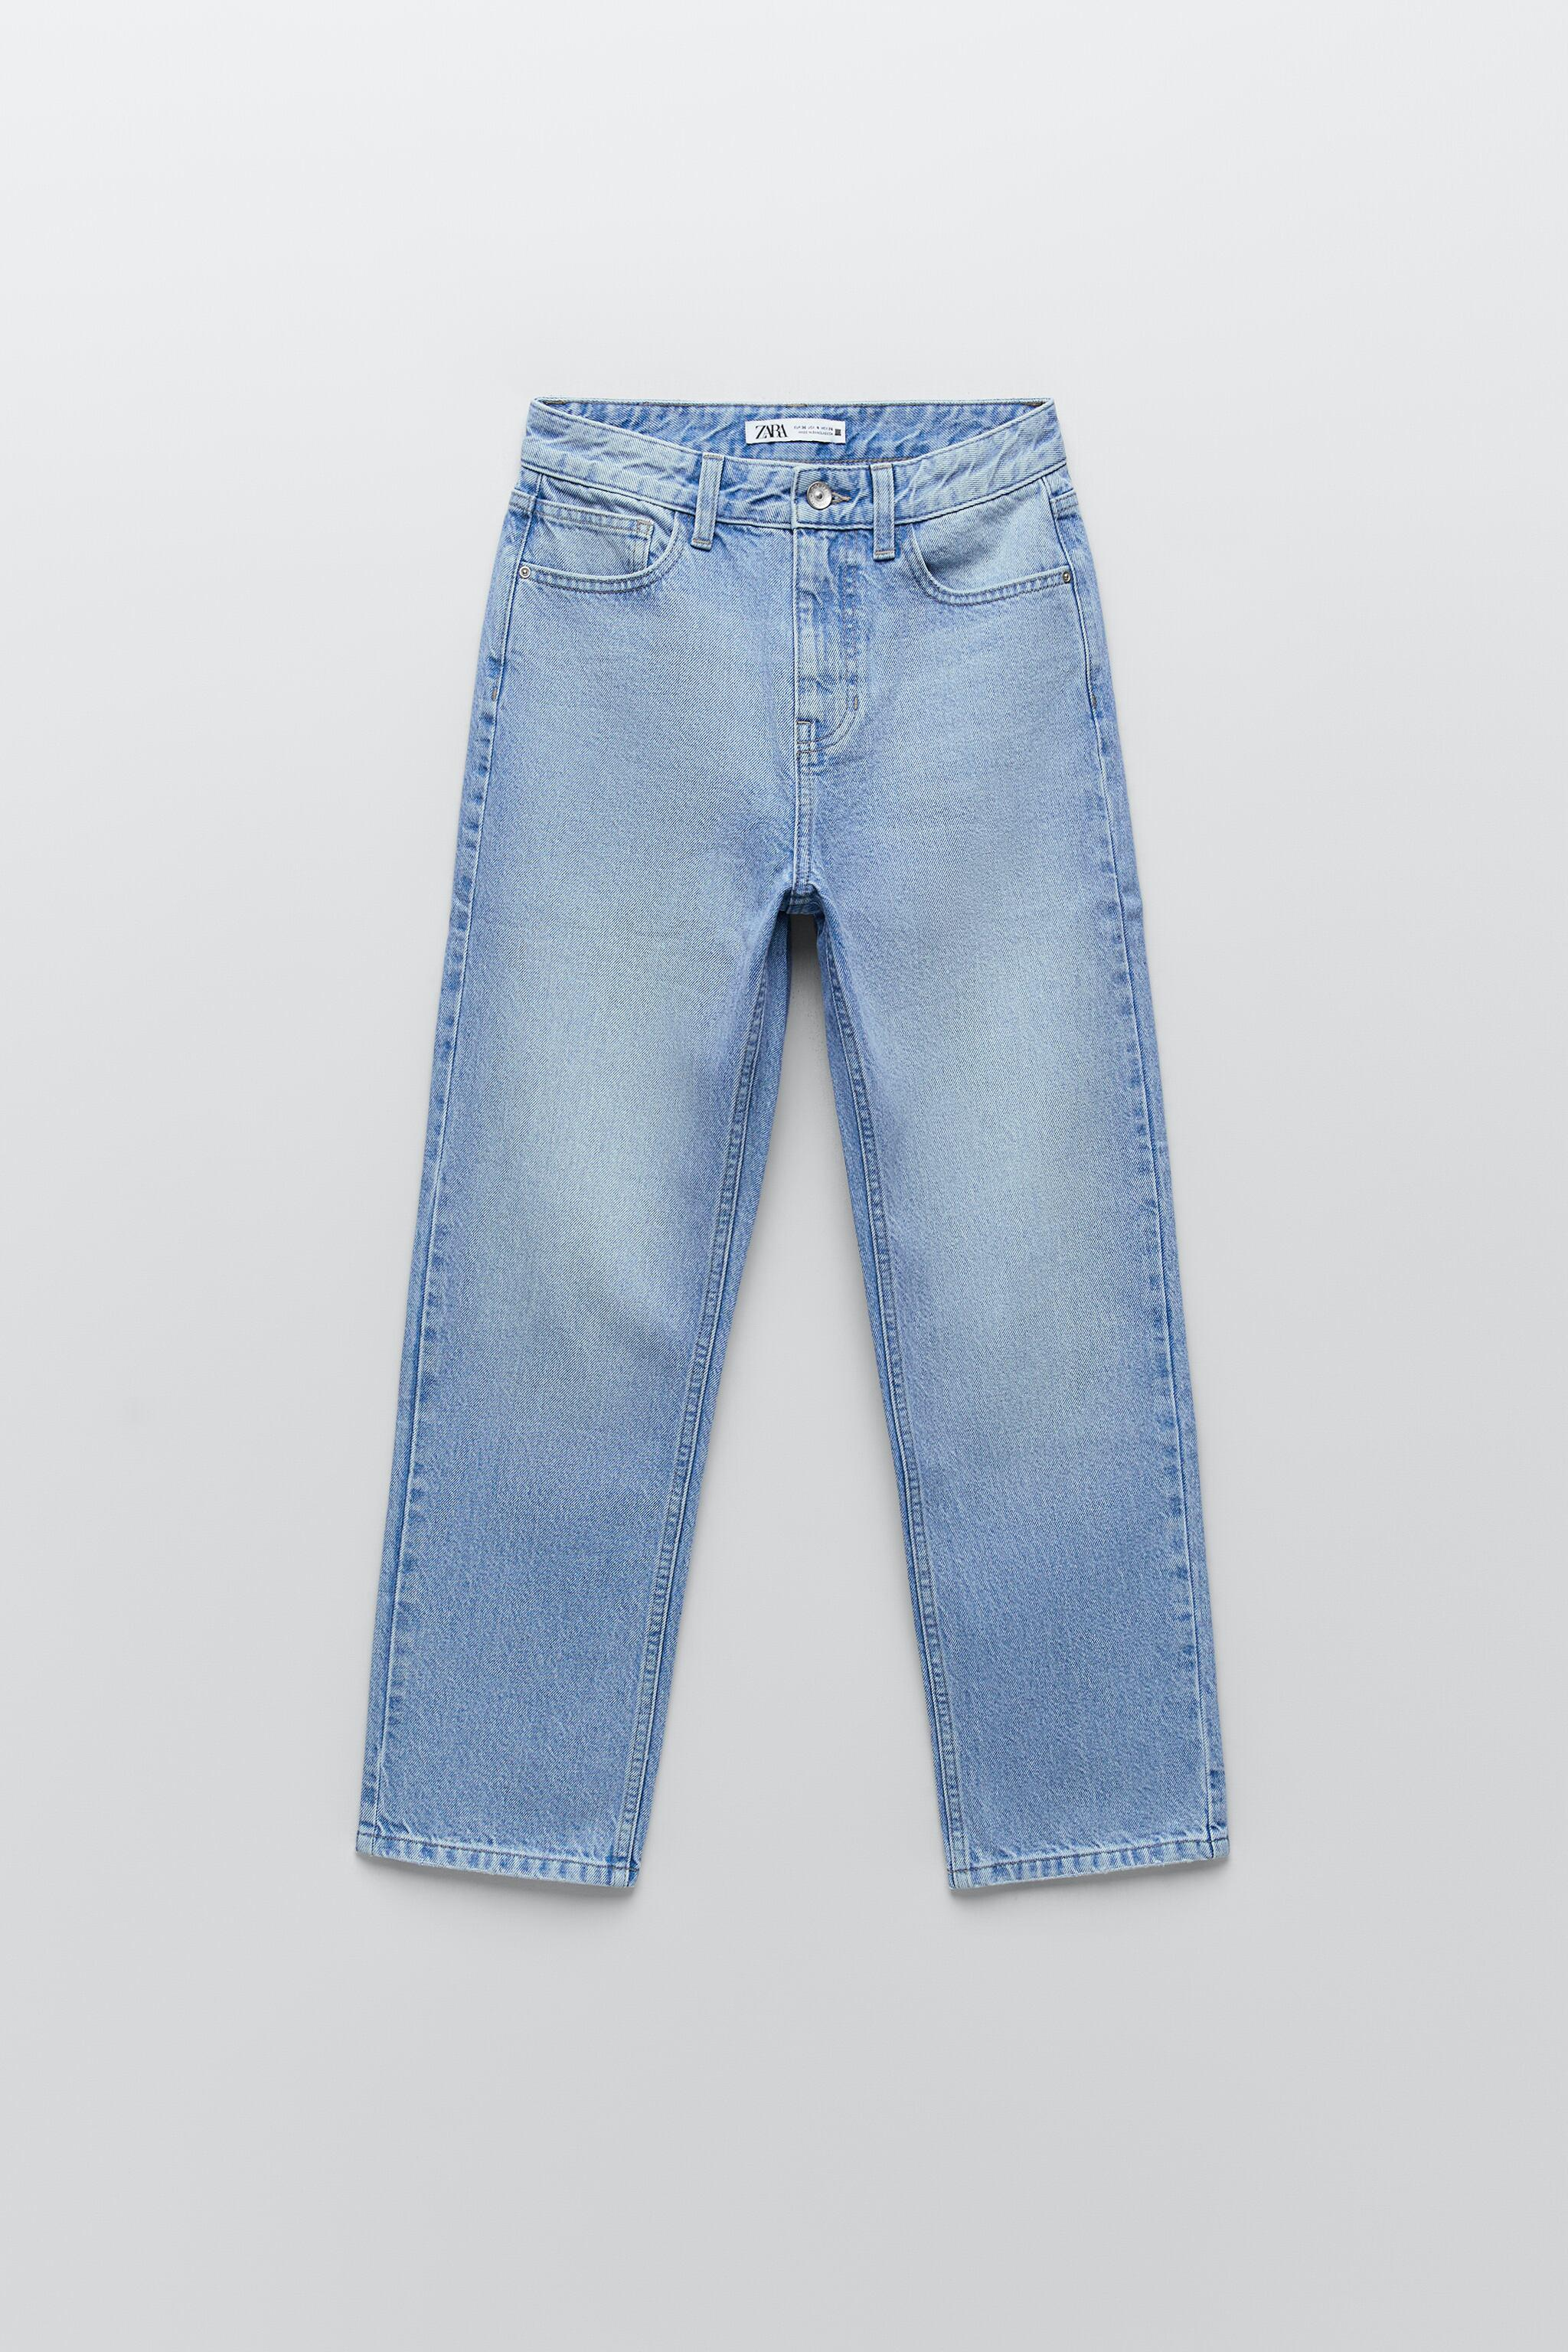 Z1975 HIGH RISE TAPERED JEANS 5